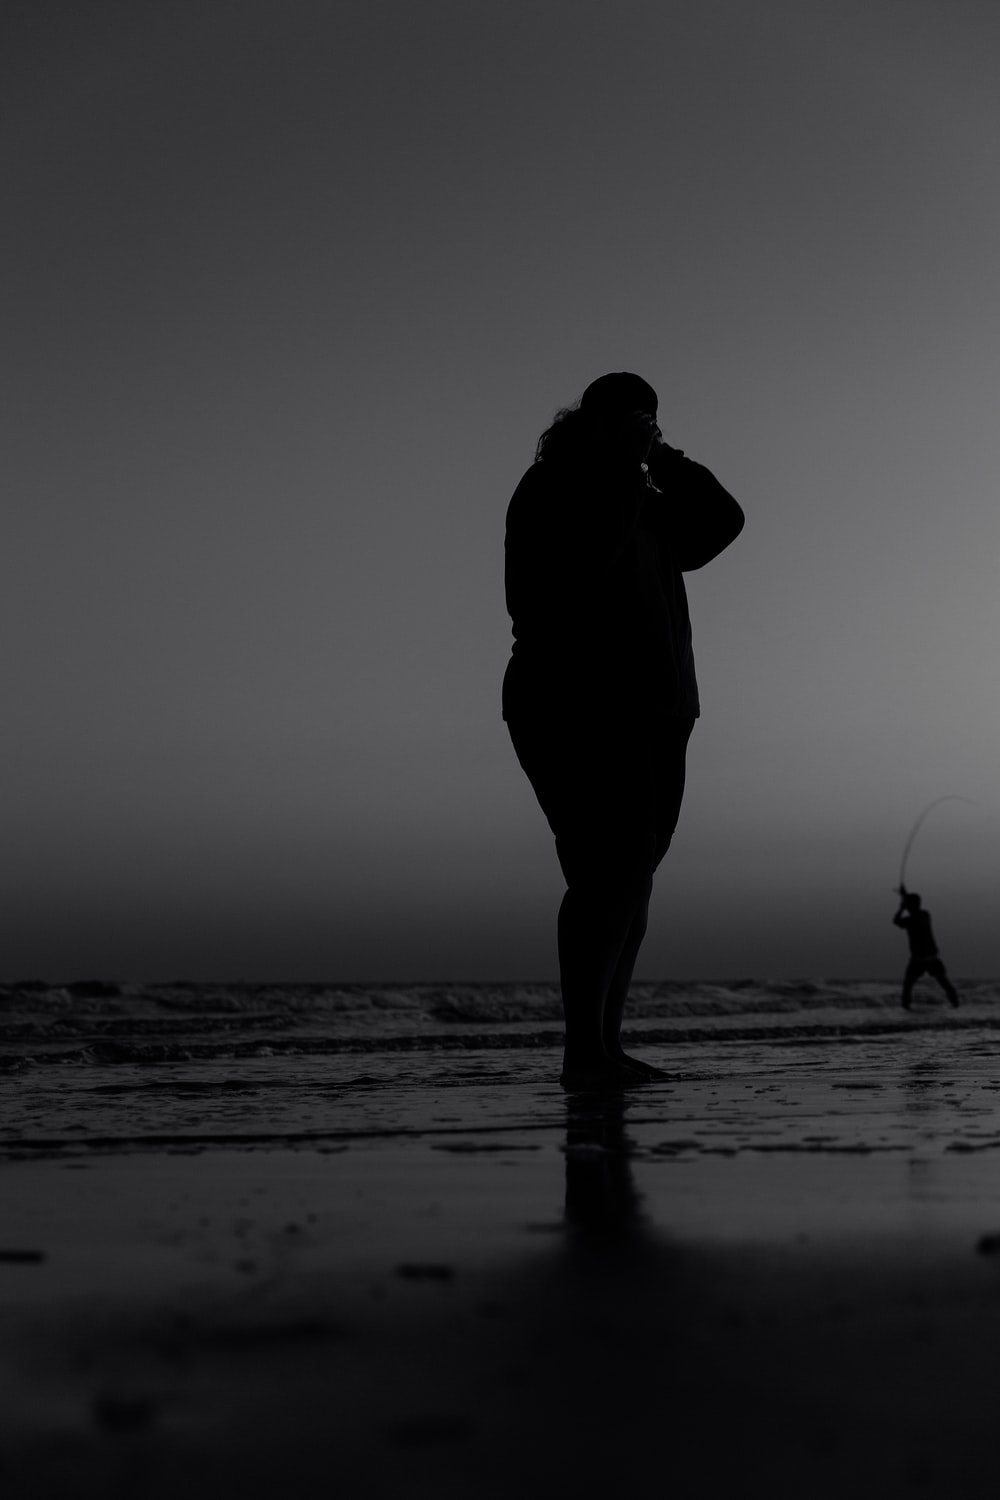 silhouette of man and woman kissing on beach during sunset